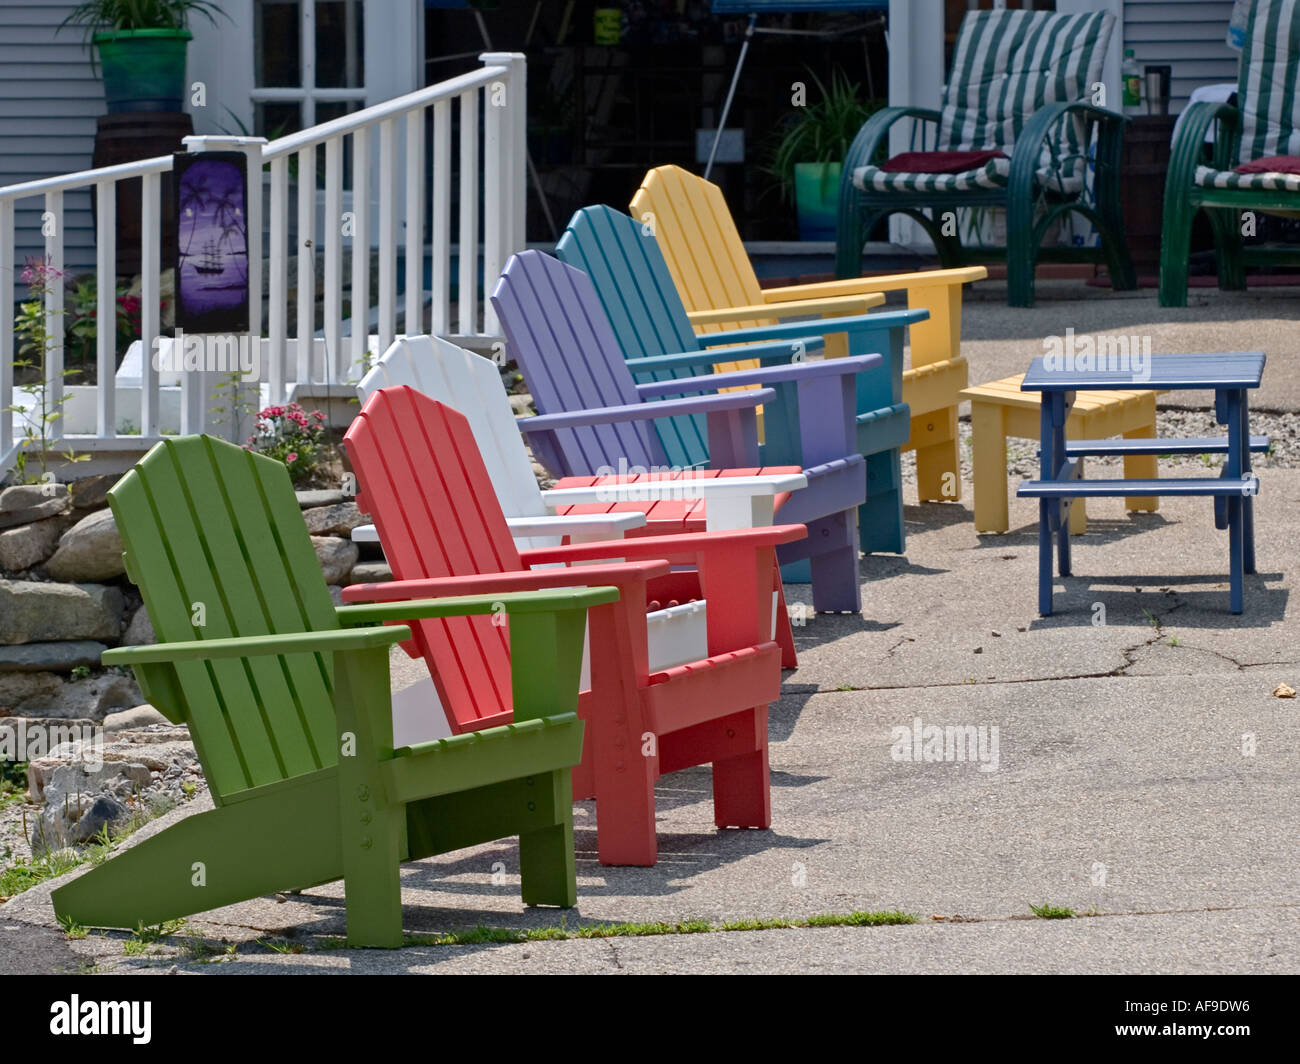 Brightly Colored Wooden Adirondack Chairs Stock Photo 7928661 Alamy